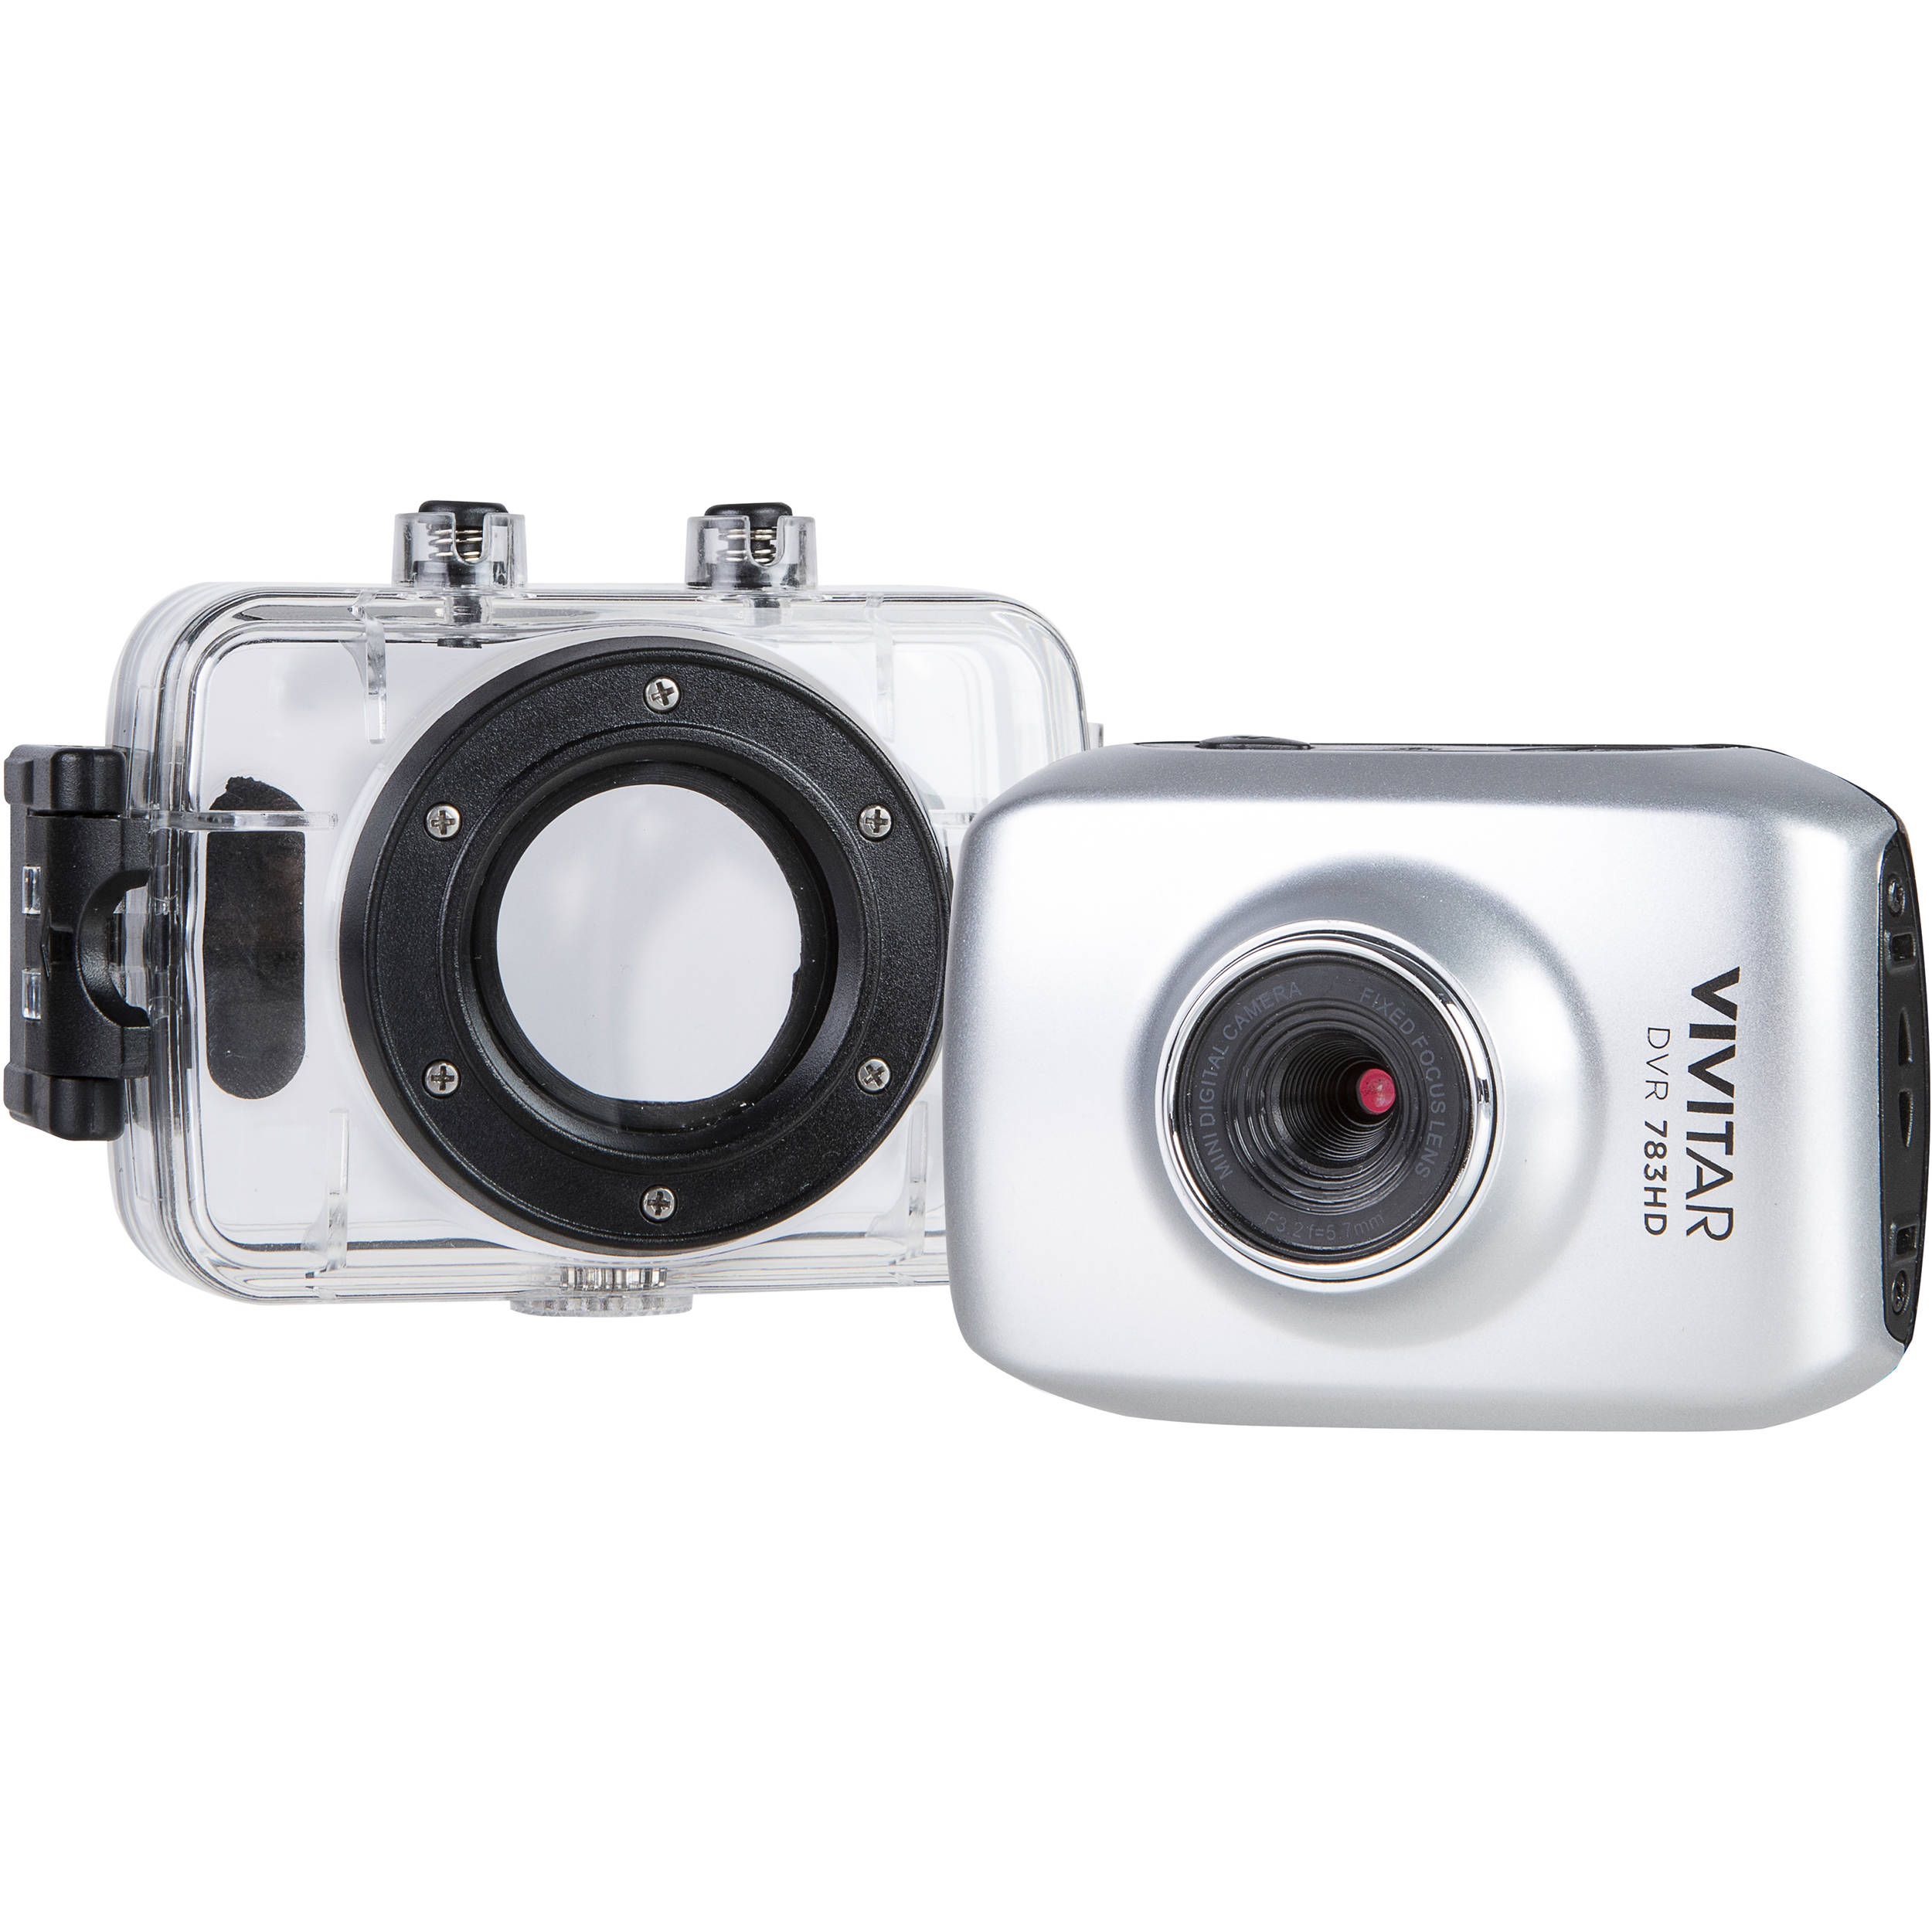 Camera Vivitar Action Cam vivitar dvr 783hd action camera silver 783 sil bh photo silver